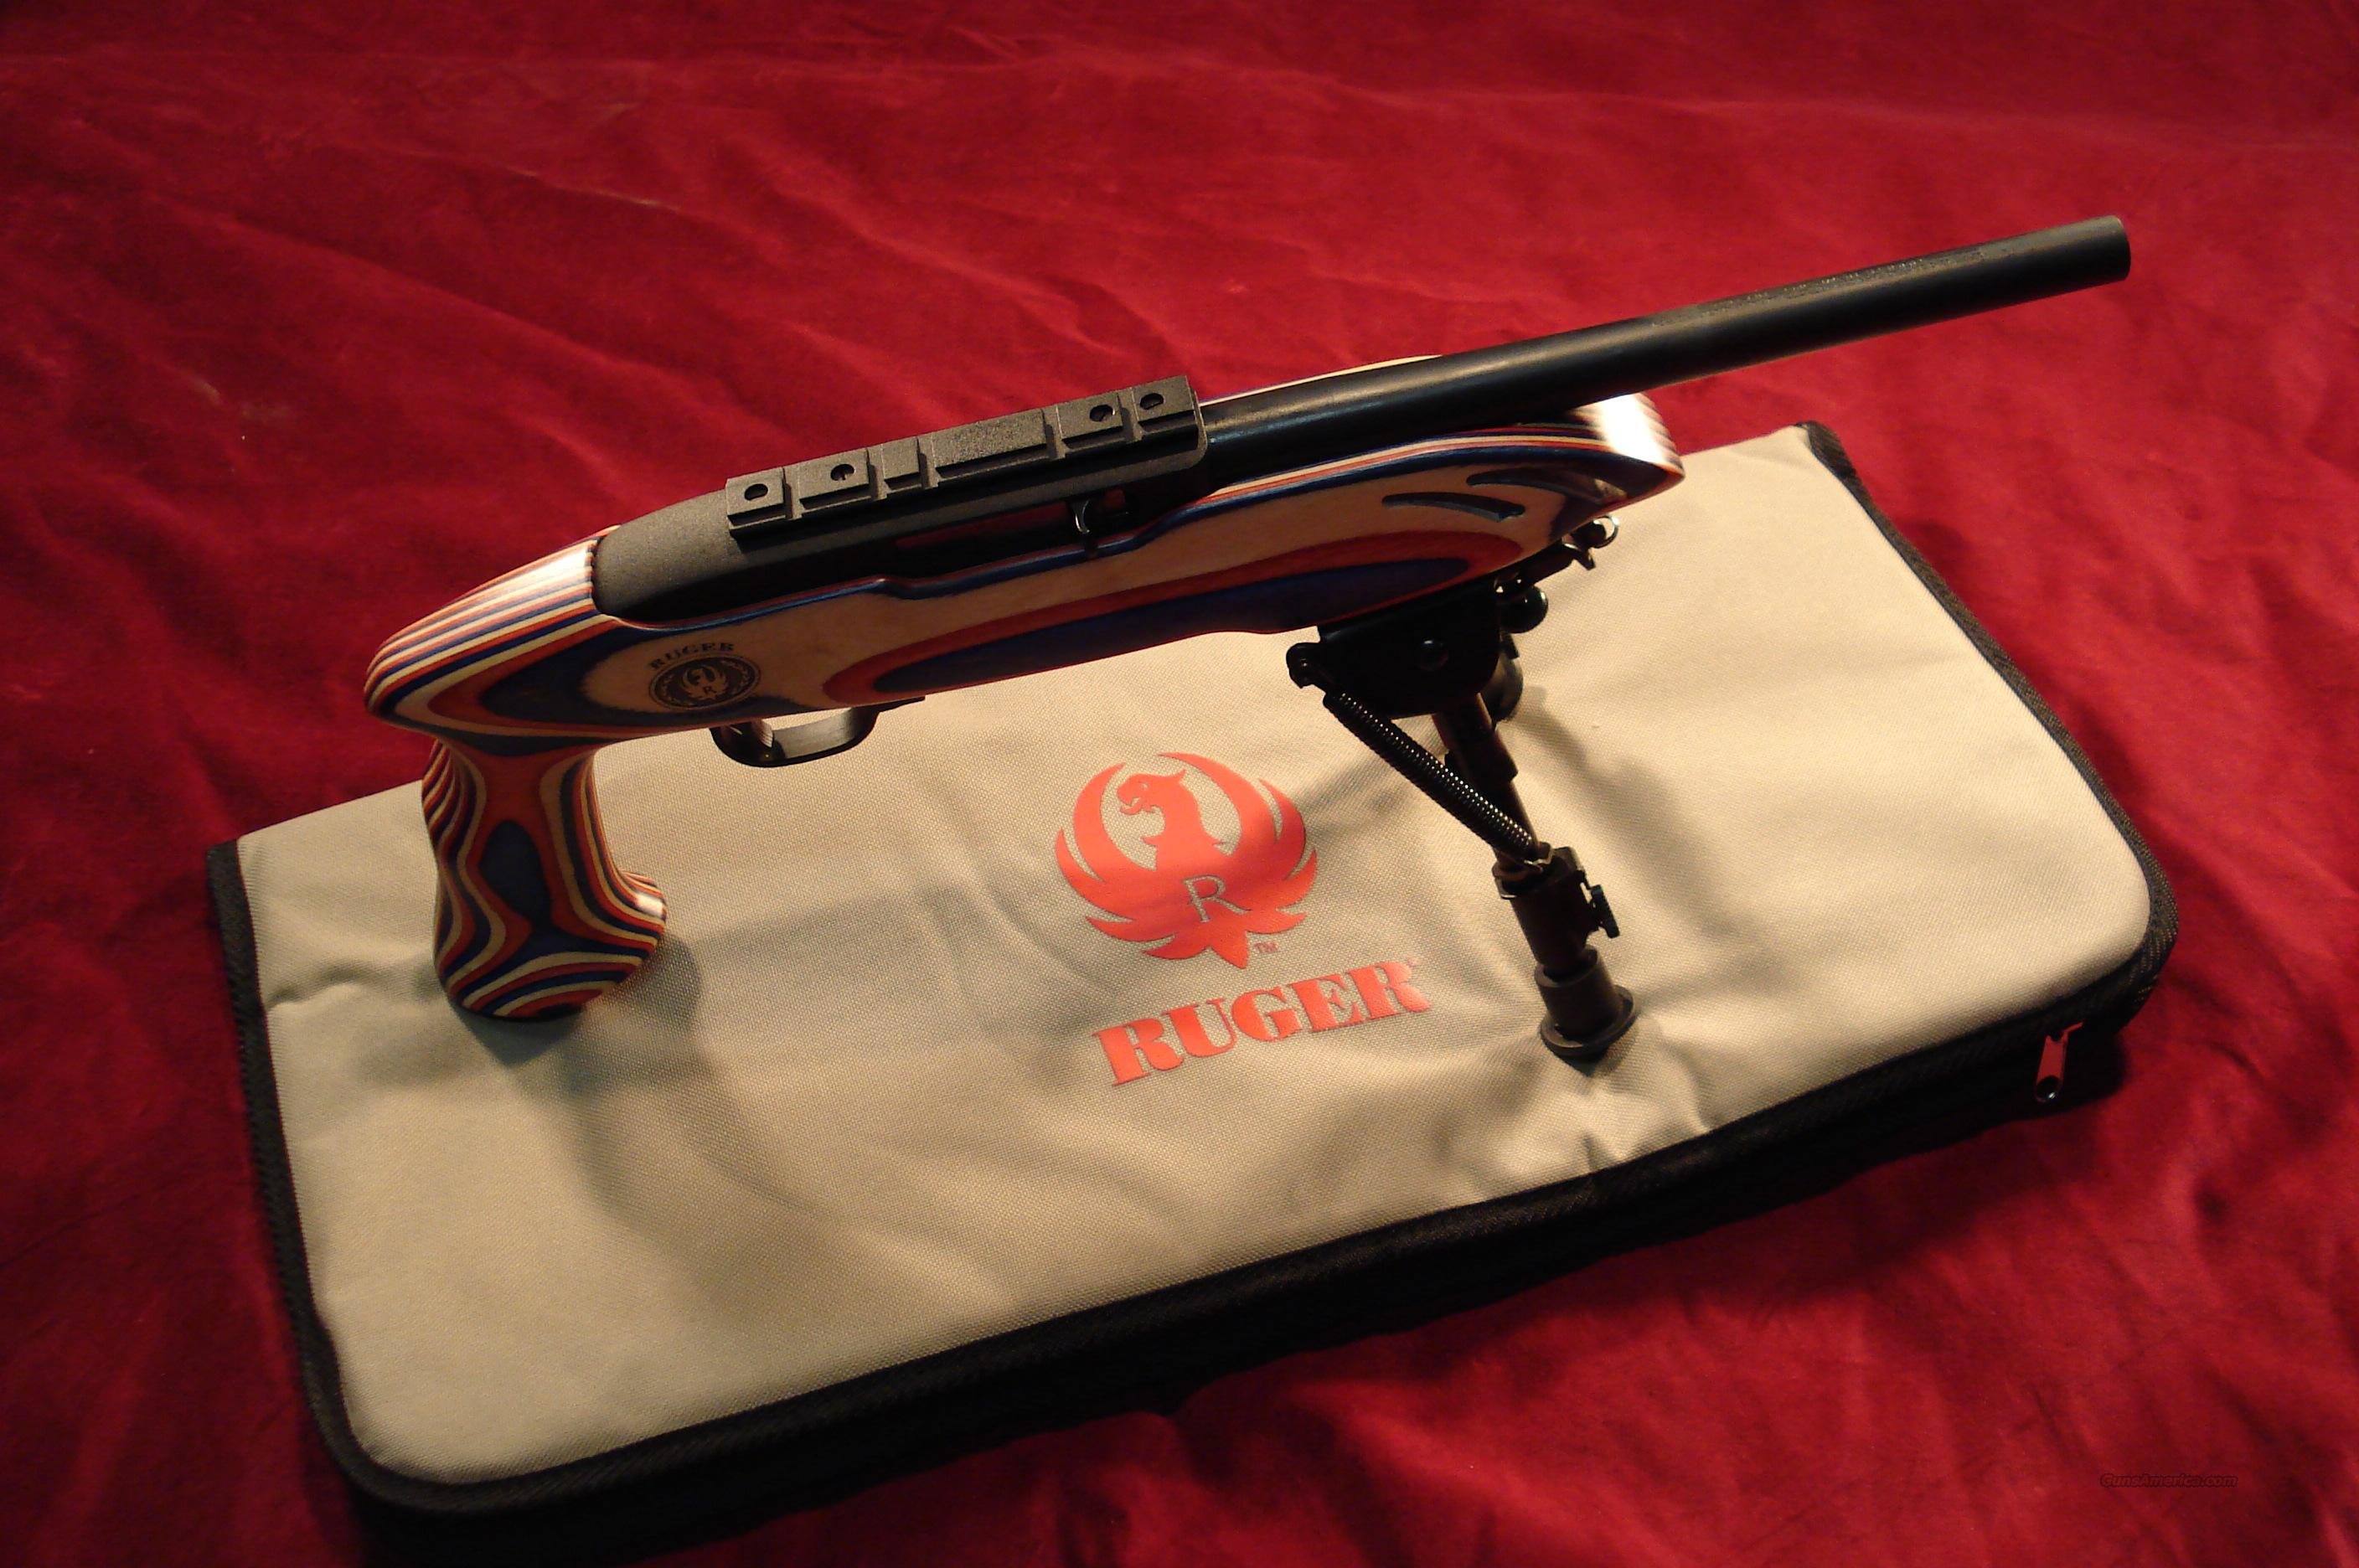 RUGER CHARGER 22LR PISTOL LAMINATE RED WHITE AND BLUE STOCK NEW  Guns > Pistols > Ruger Semi-Auto Pistols > Full Frame Autos